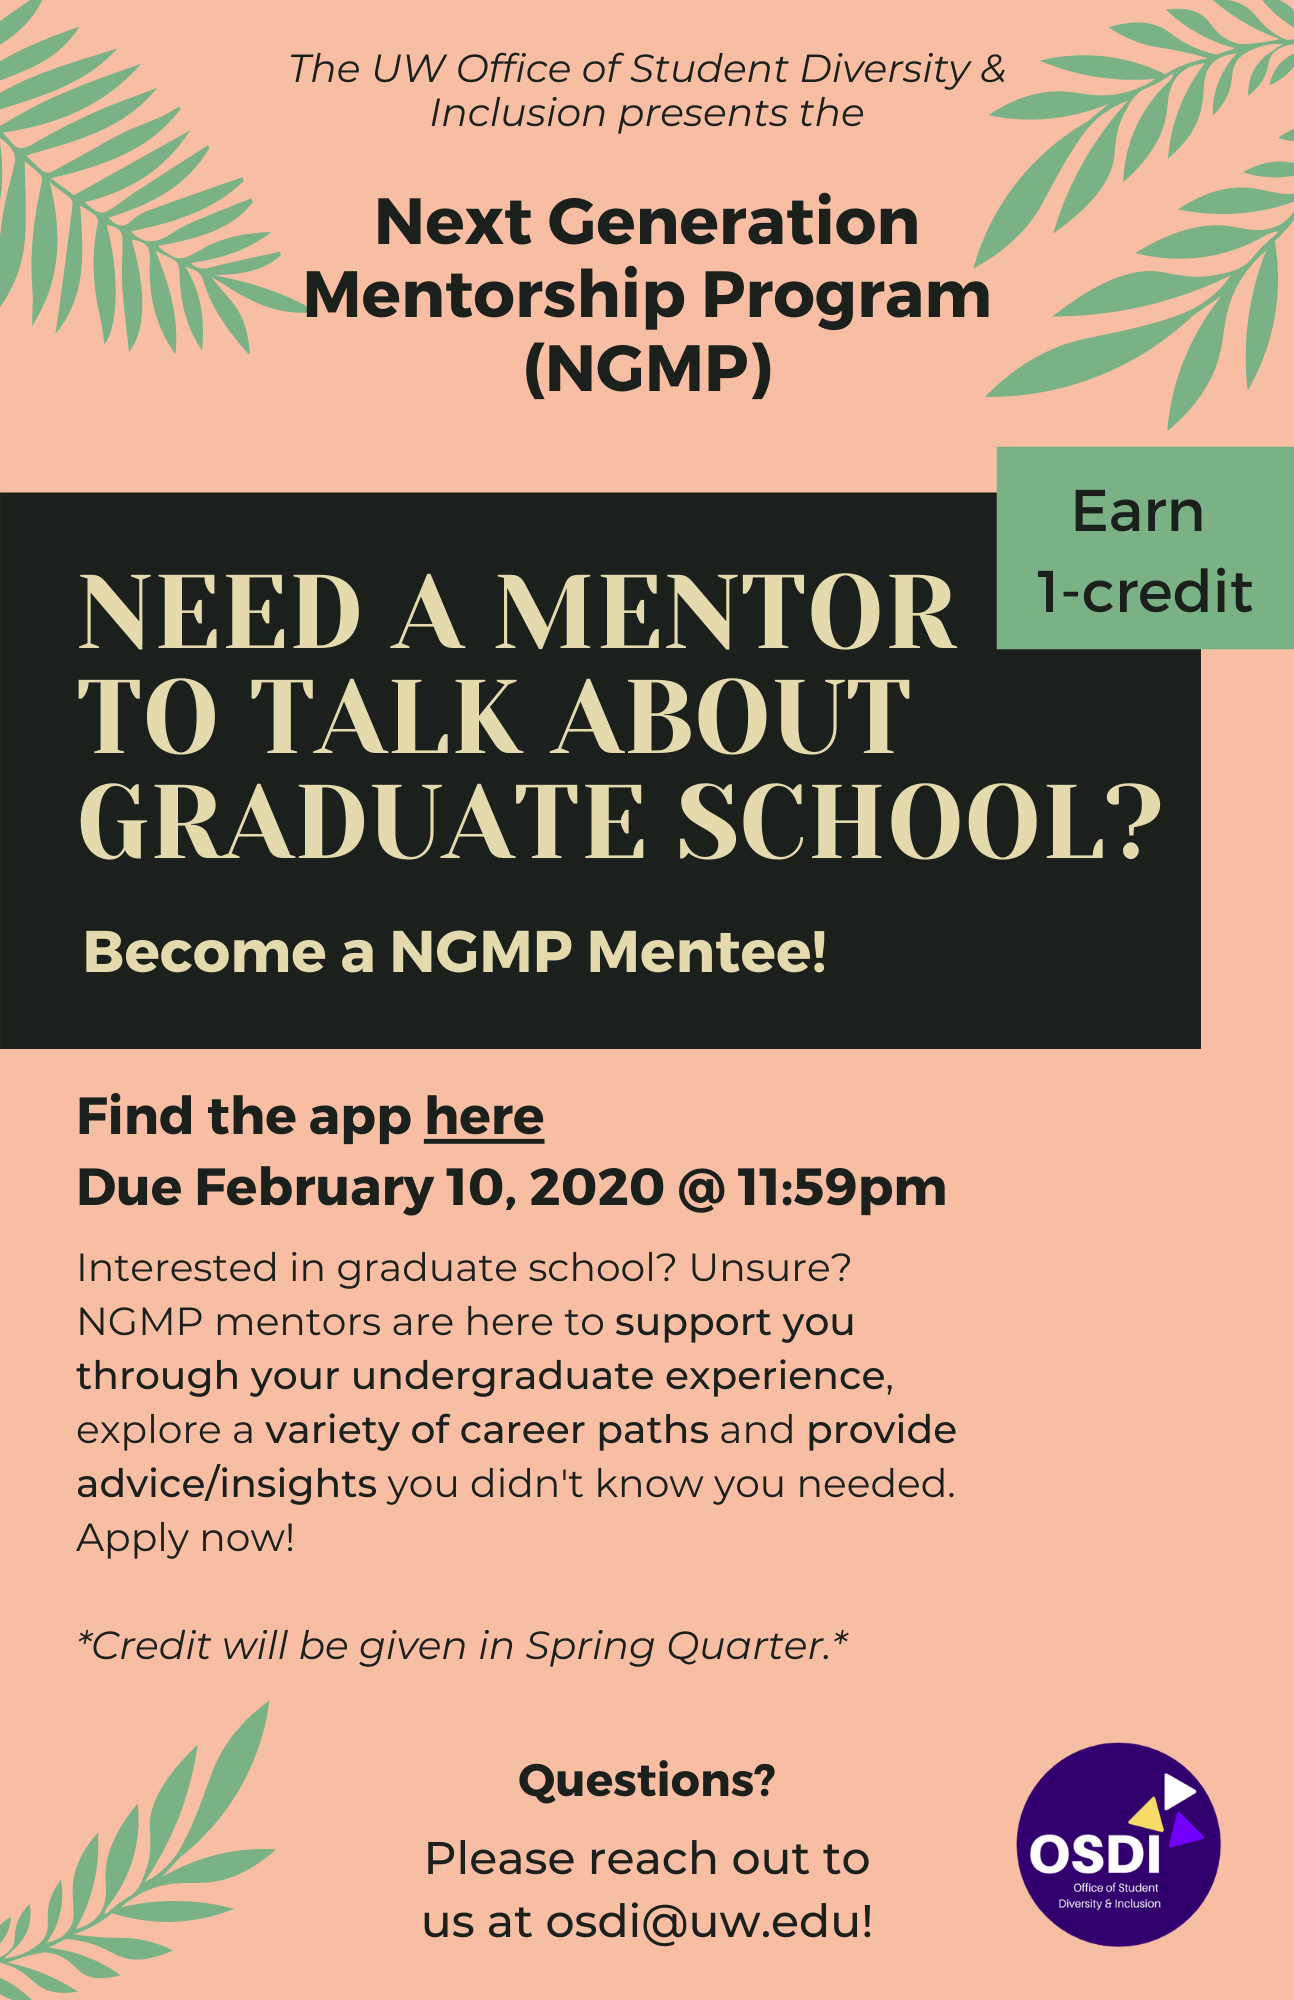 Become a NGMP Mentee if you are looking for a mentor to talk about graduate school and earn 1 credit in Spring 2021! Apply below.